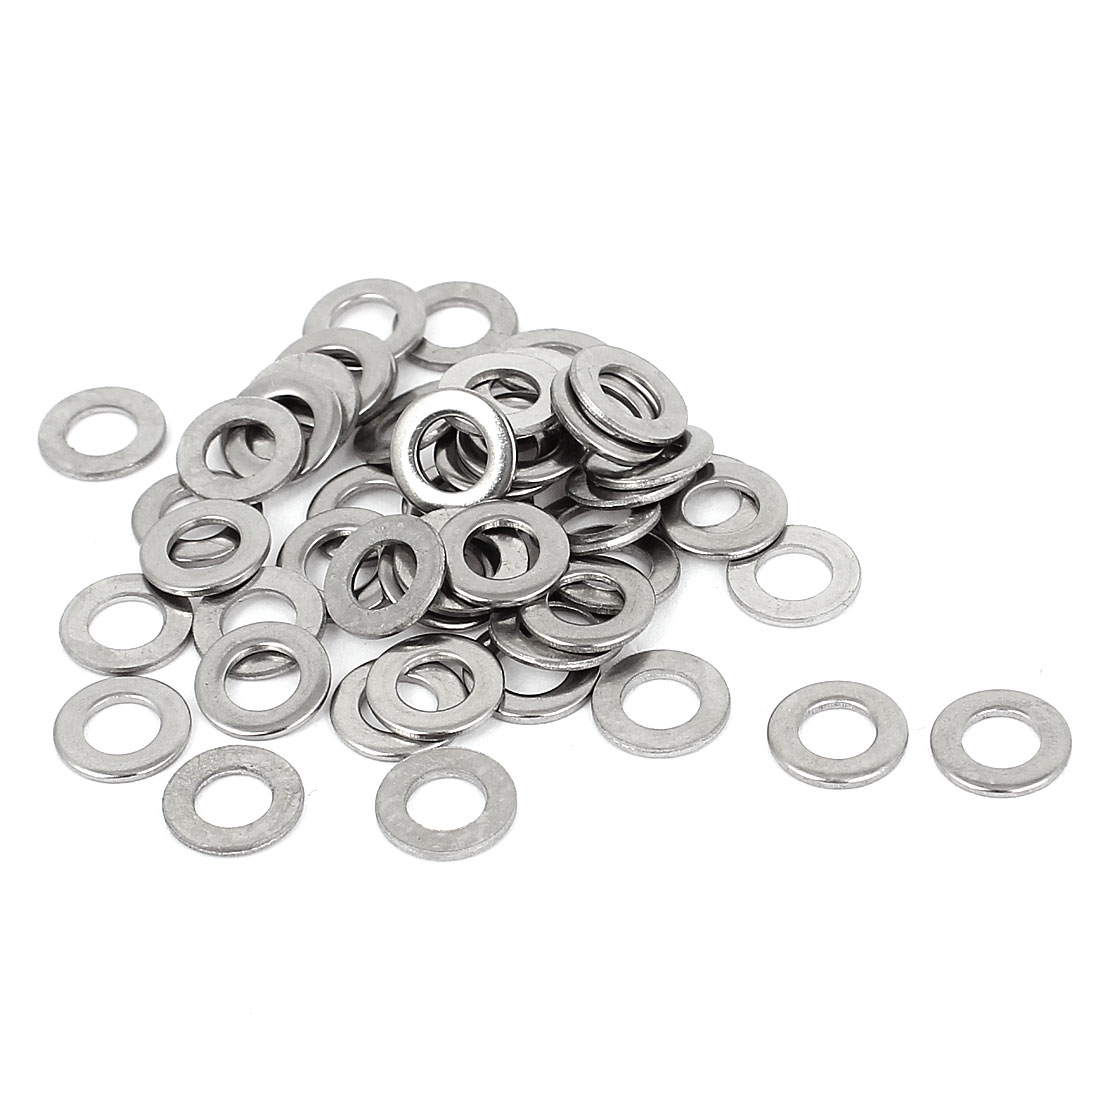 50pcs 316 Stainless Steel Flat Washer #10 Plain Spacer for Screws Bolts